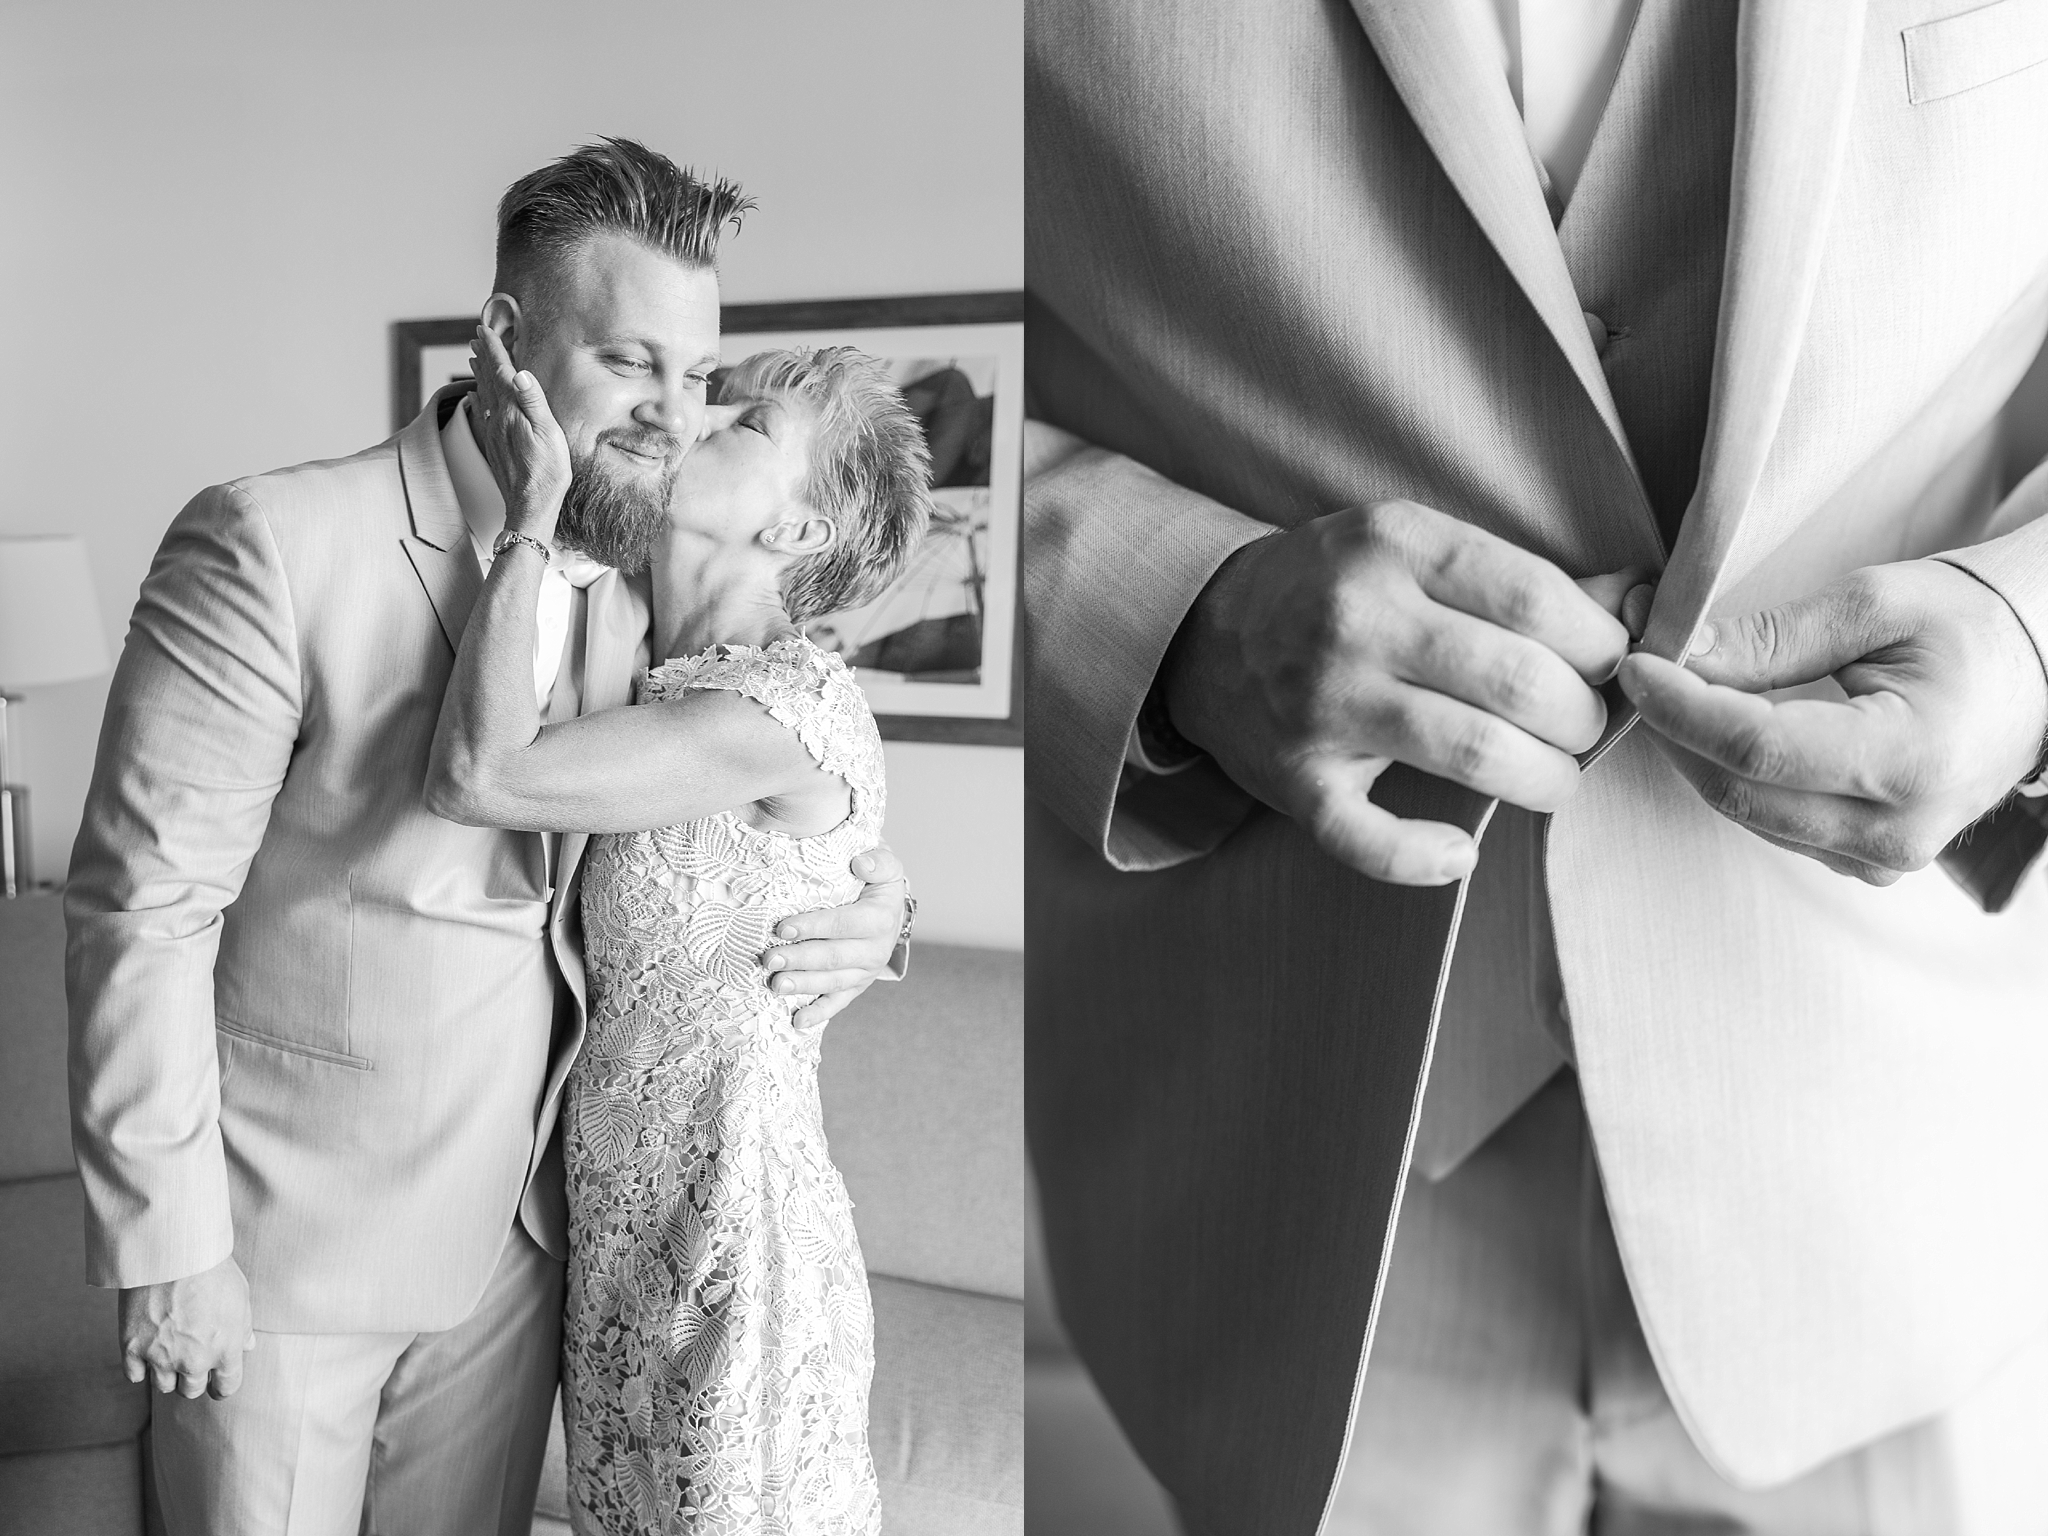 romantic-artful-candid-wedding-photos-in-detroit-lansing-ann-arbor-northern-michigan-and-chicago-by-courtney-carolyn-photography_0030.jpg